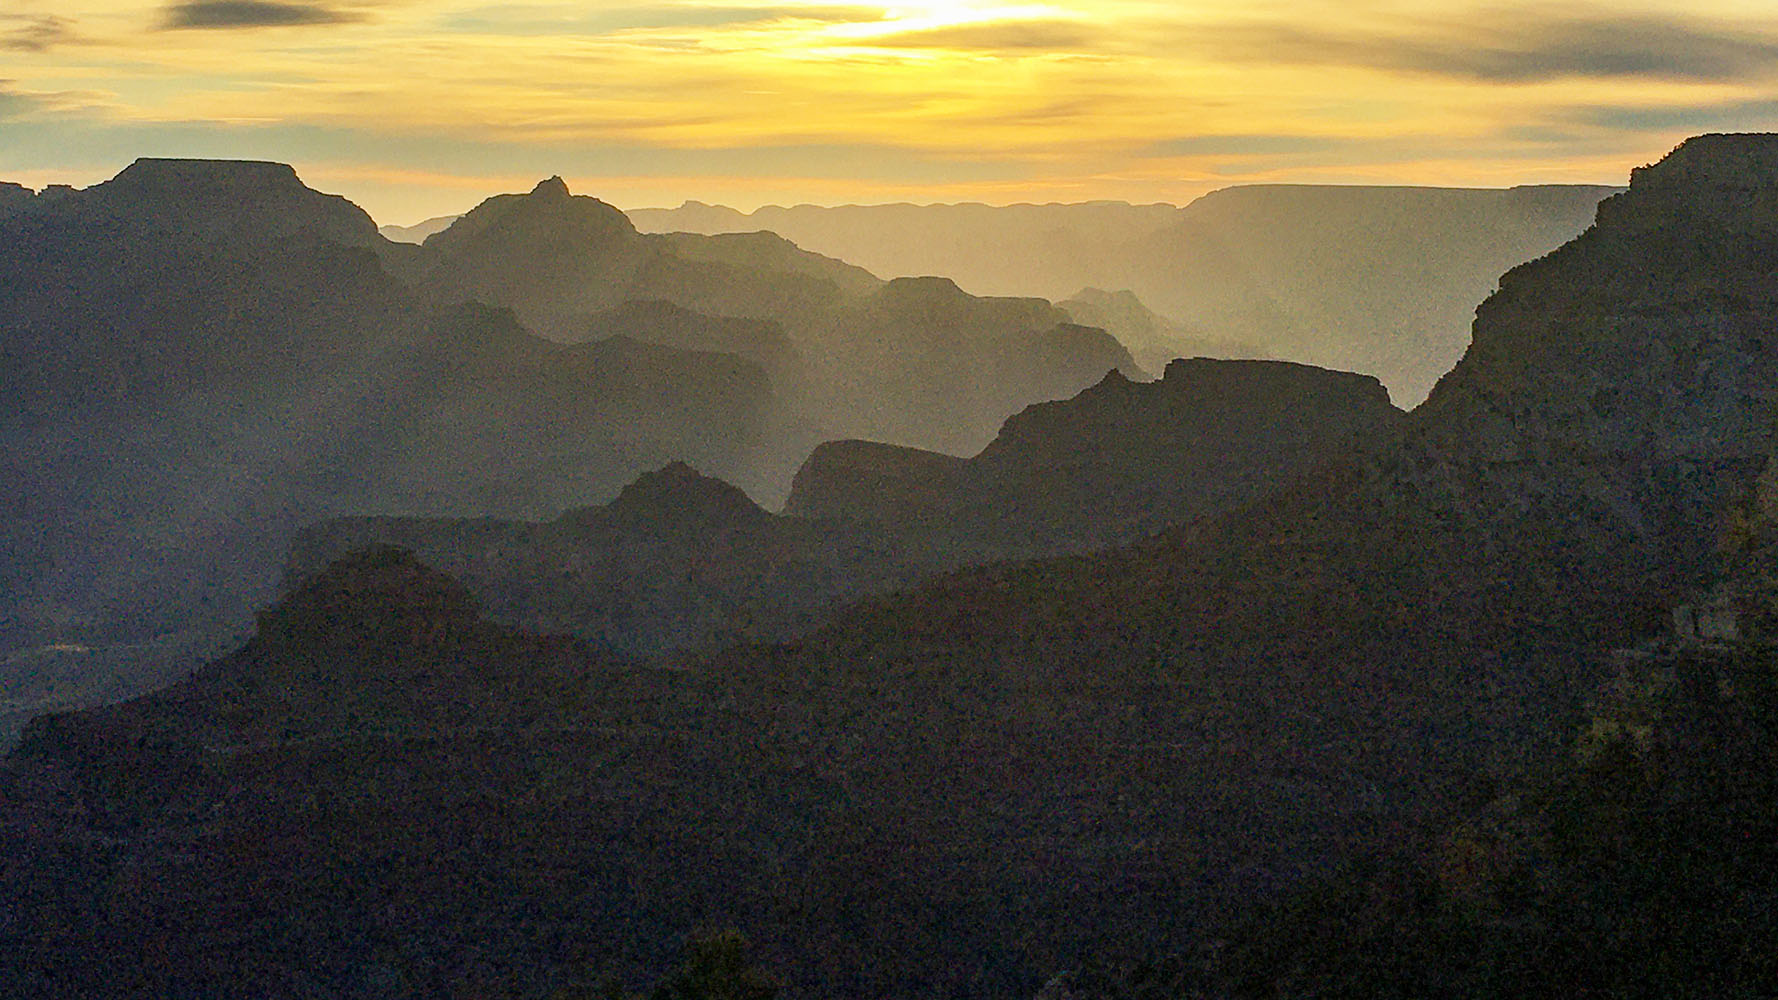 a series of silhouetted ridgelines and promontories bathed in yellow sunrise light.